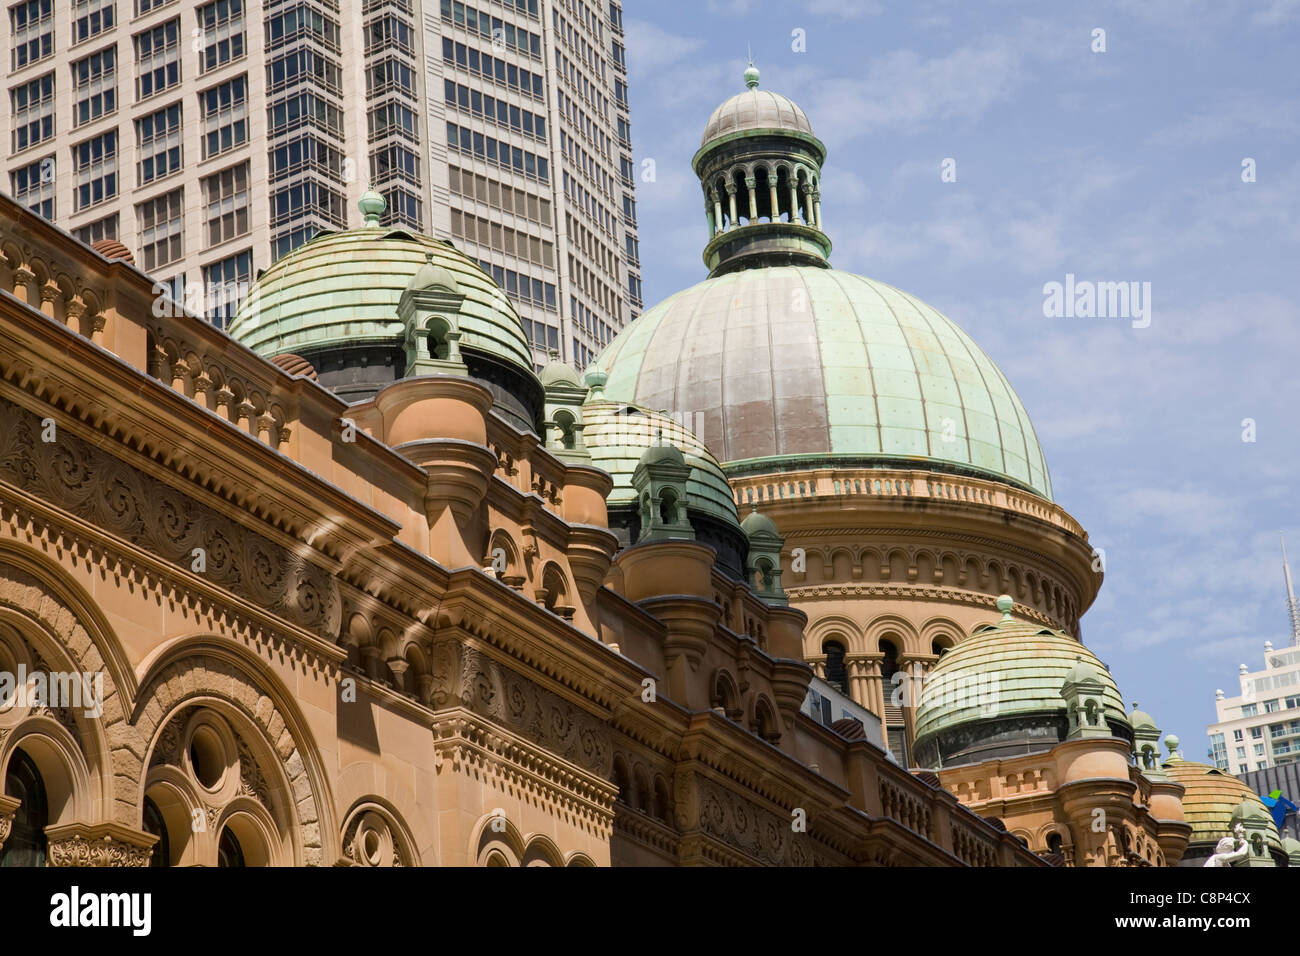 queen victoria building in sydney qvb QVB on york street